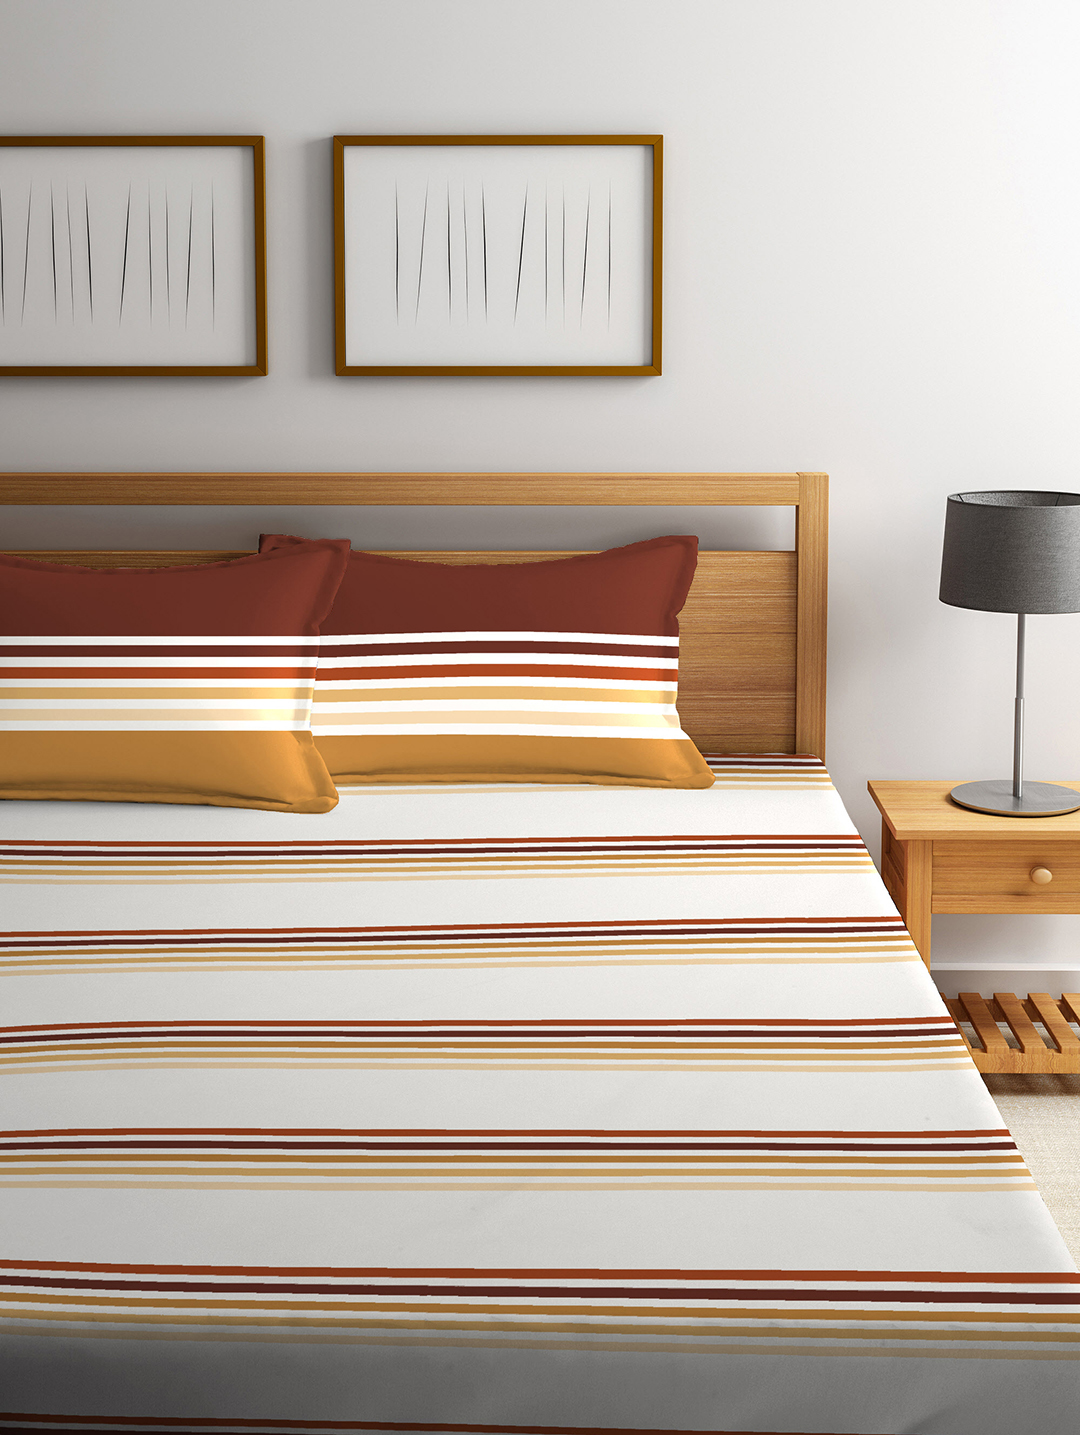 King Bedsheet French Gold Cotton King Bed Sheets in White, Beige Colour by Tangerine